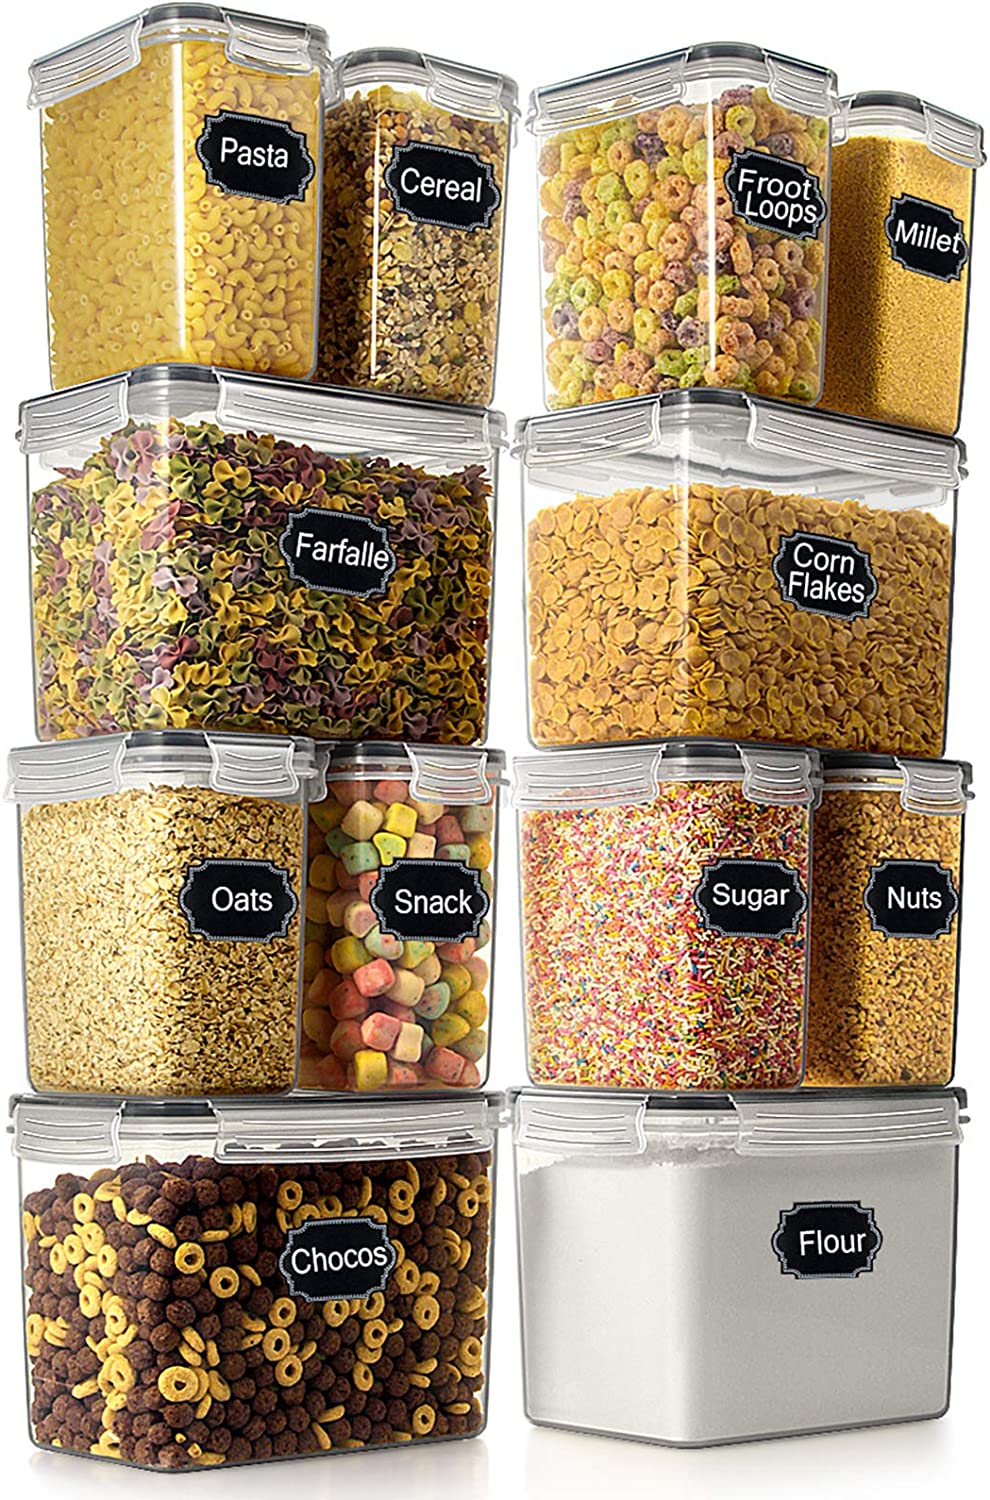 Airtight Food Storage Container - Wildone Cereal & Dry Food Storage Containers Set of 12, Leak Proof & BPA Free, with 20 Labels & 1 Chalk Marker